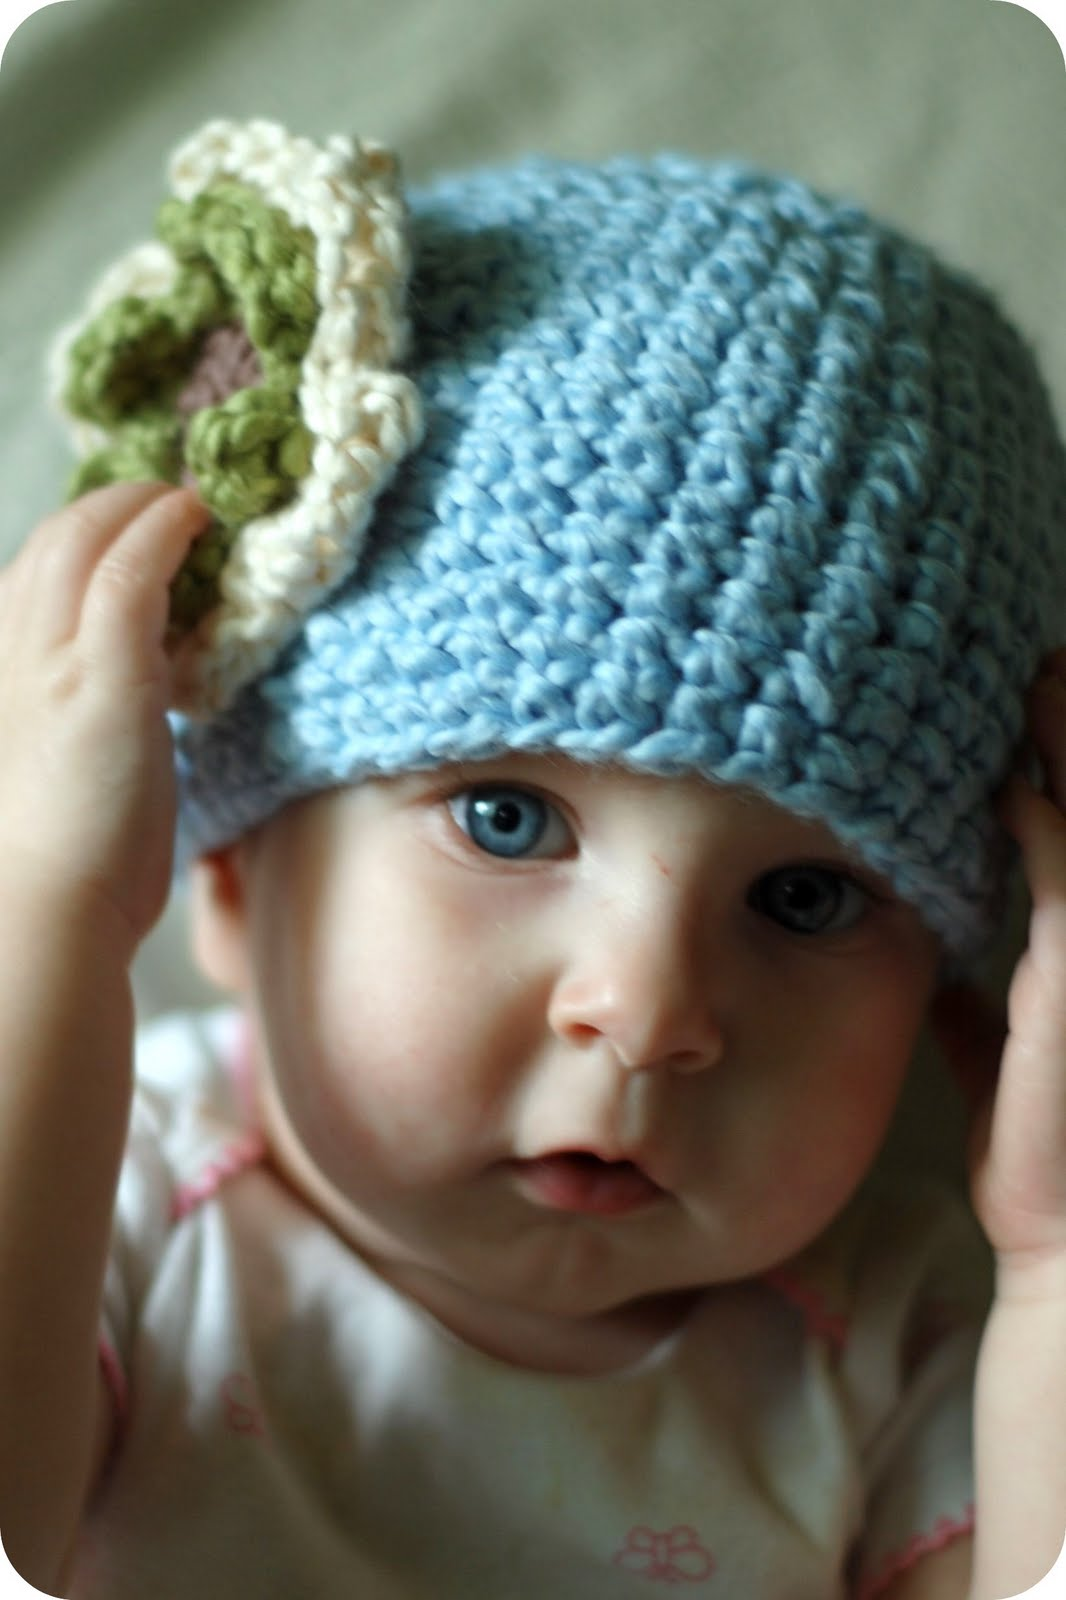 Free Crochet Flower Patterns For Baby Hats : The Sitting Tree: Free Crochet Pattern: Organic Cotton ...